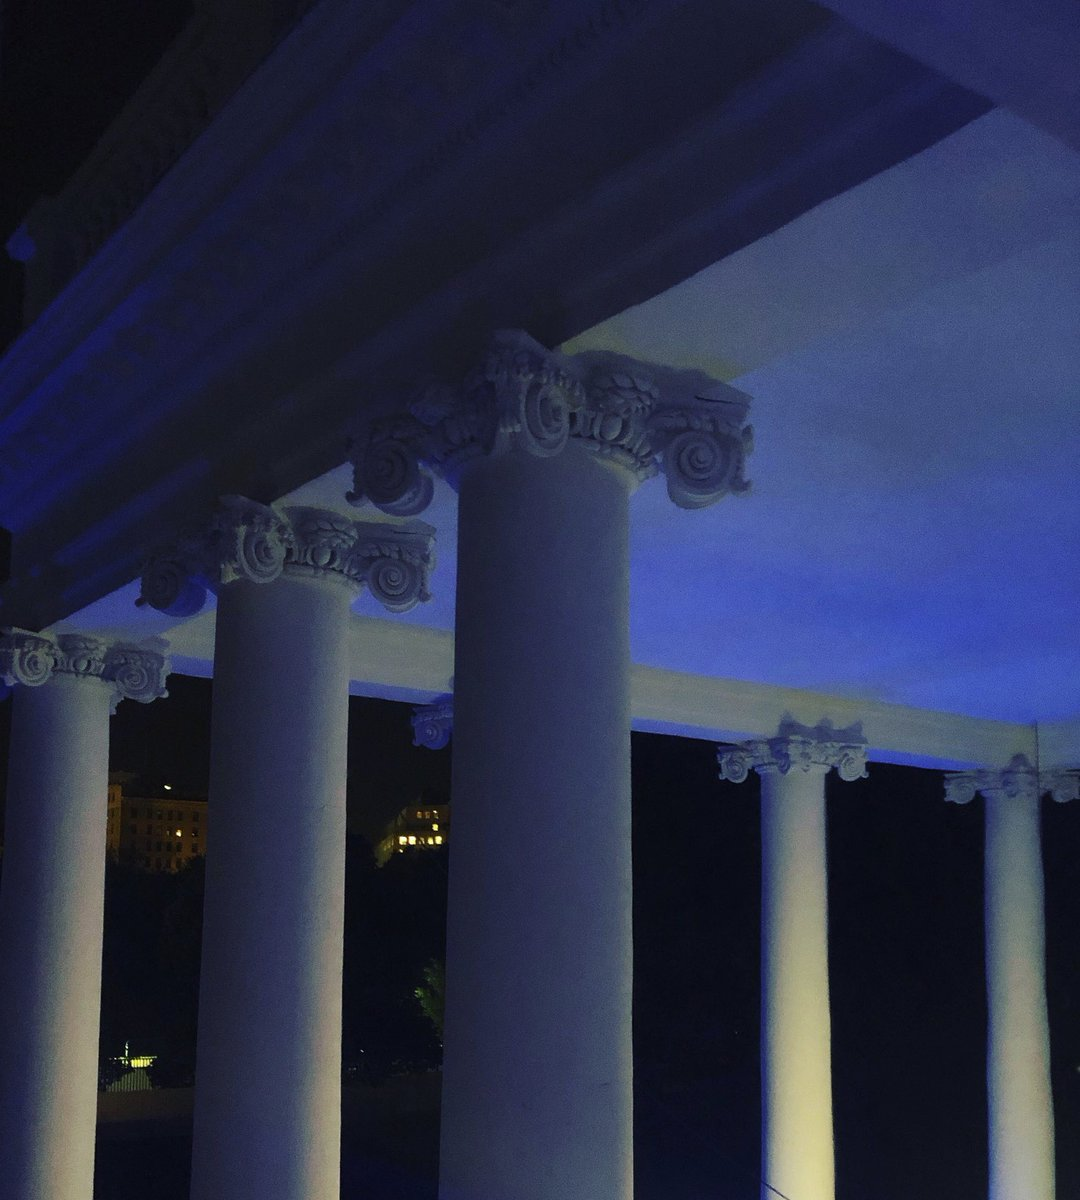 Tonight I'm proud to light @WhiteHouse blue in honor of the law enforcement officers who have lost their lives in the line of duty & who continue to protect & serve the American people. #PoliceWeek #PeaceOfficersMemorialDay <br>http://pic.twitter.com/8voFAP3NGd